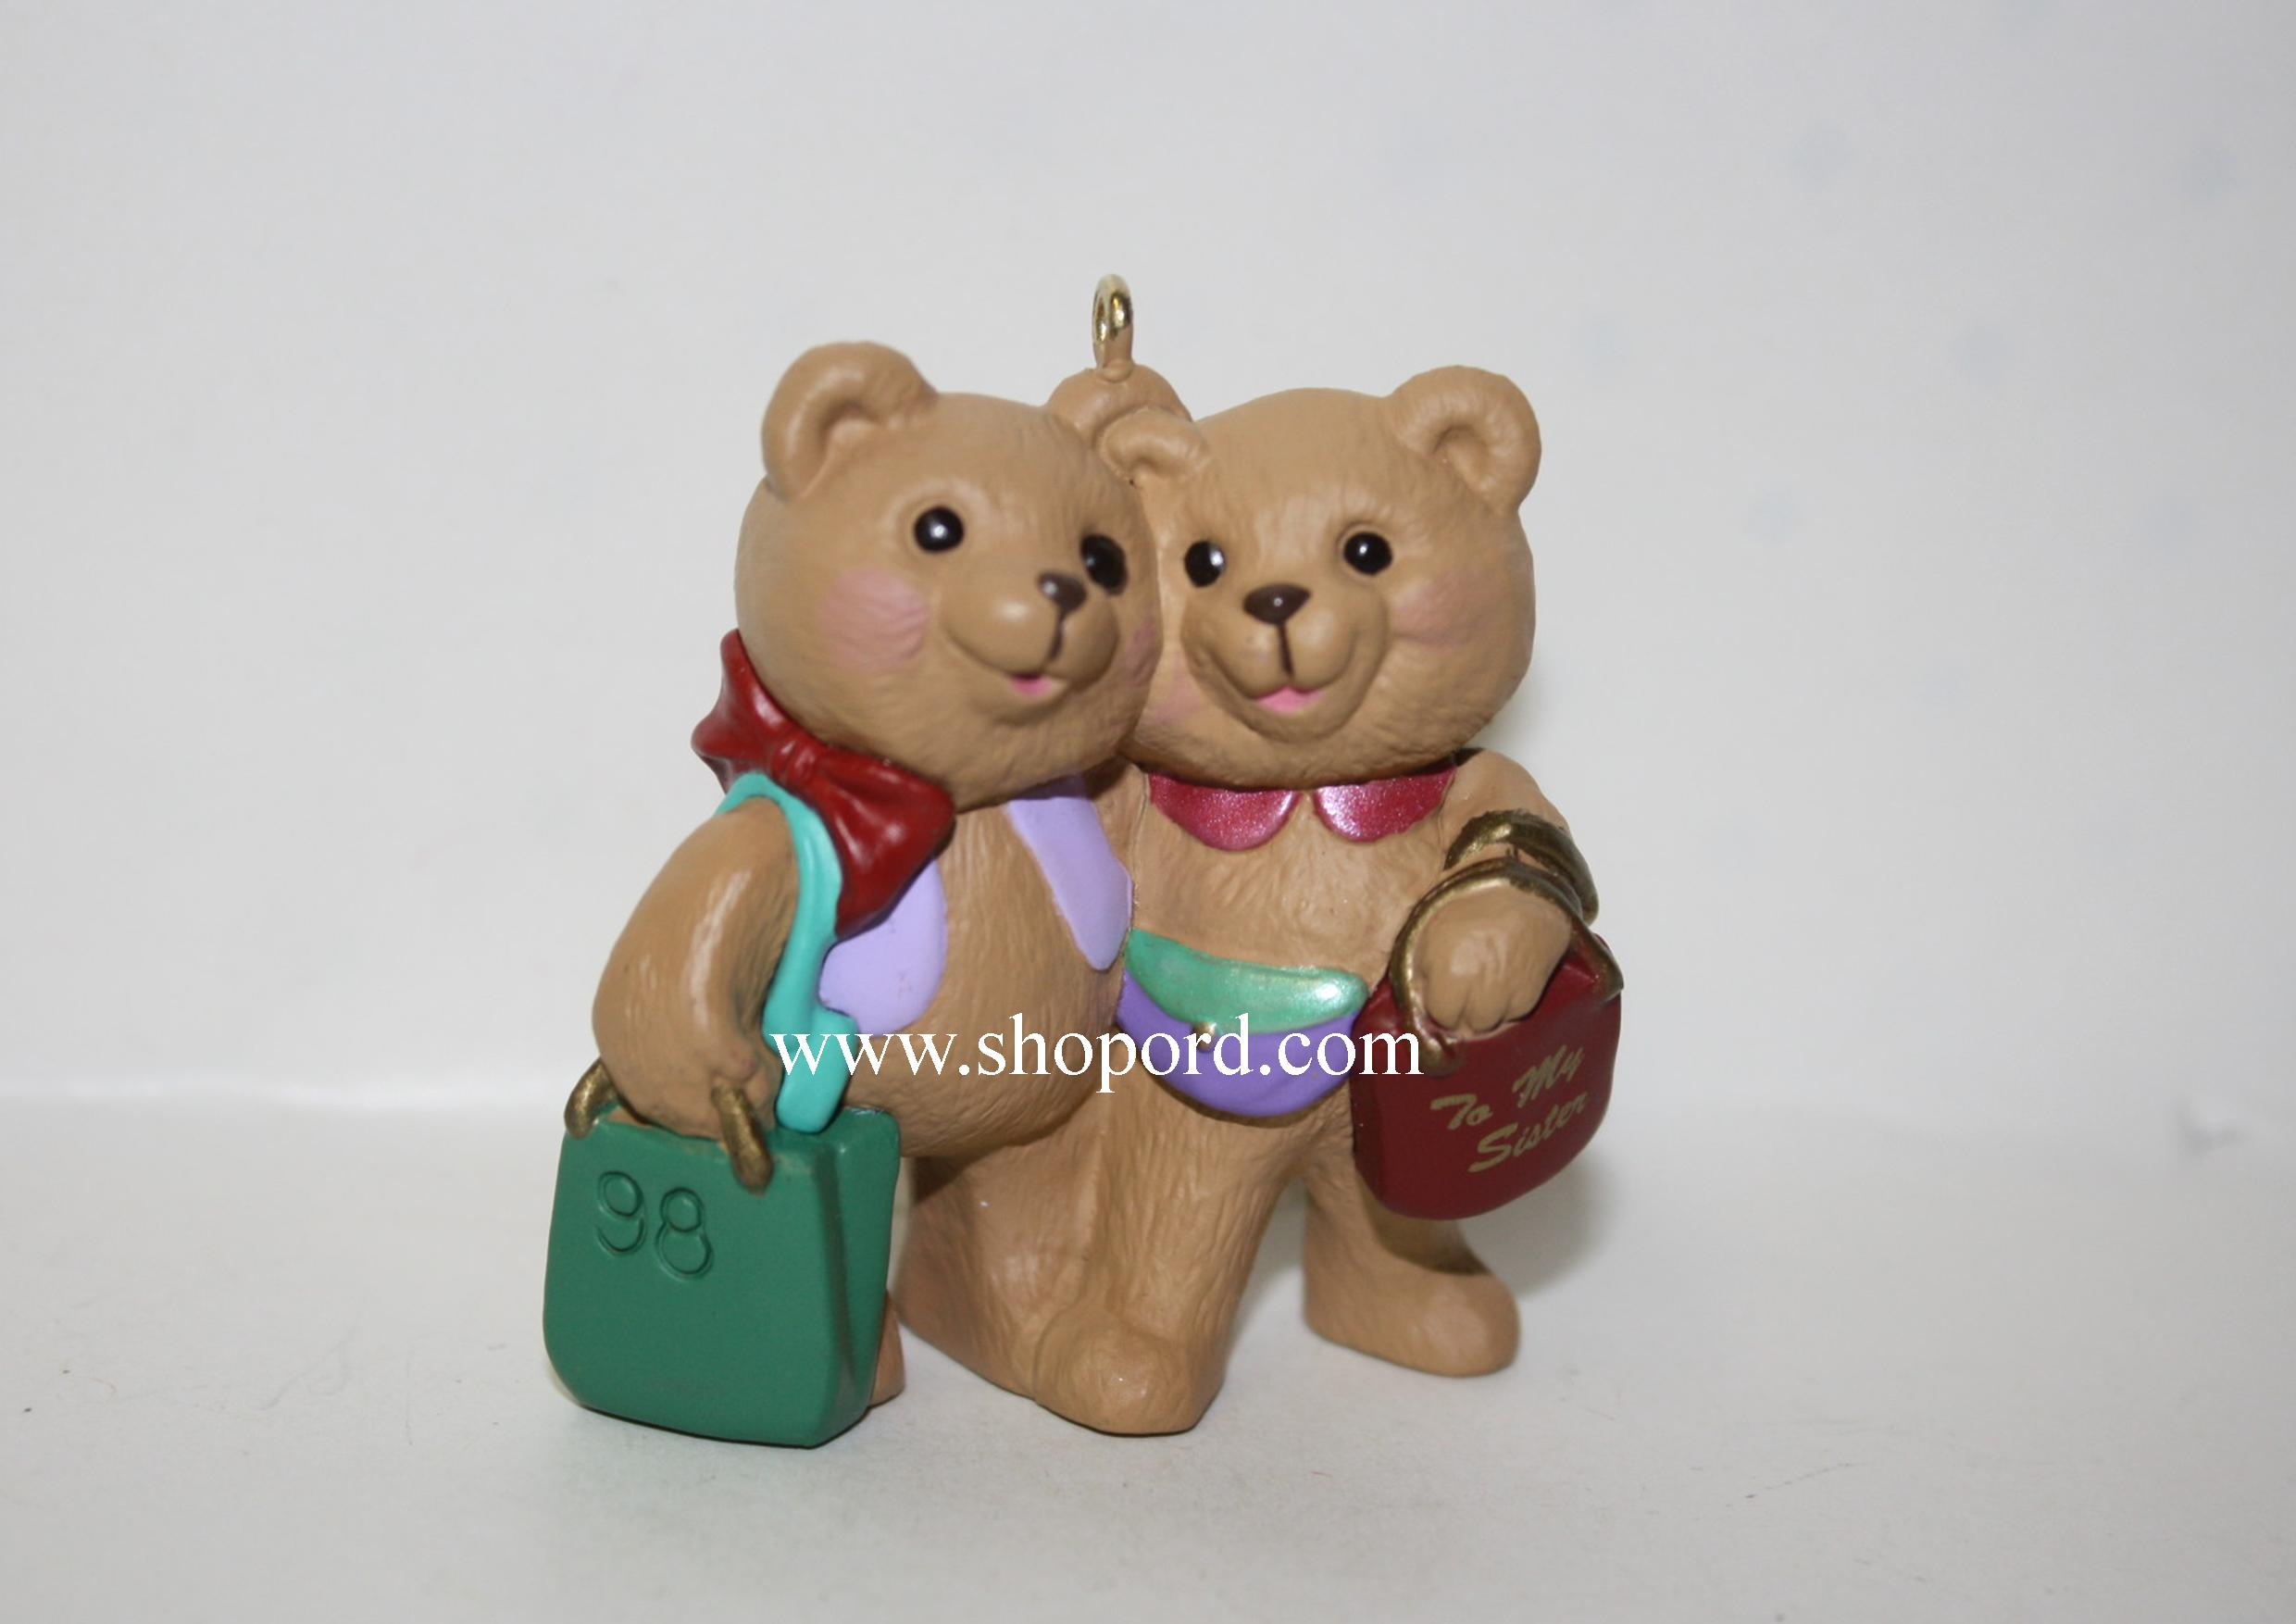 Hallmark 1998 Sister To Sister Ornament QX6693